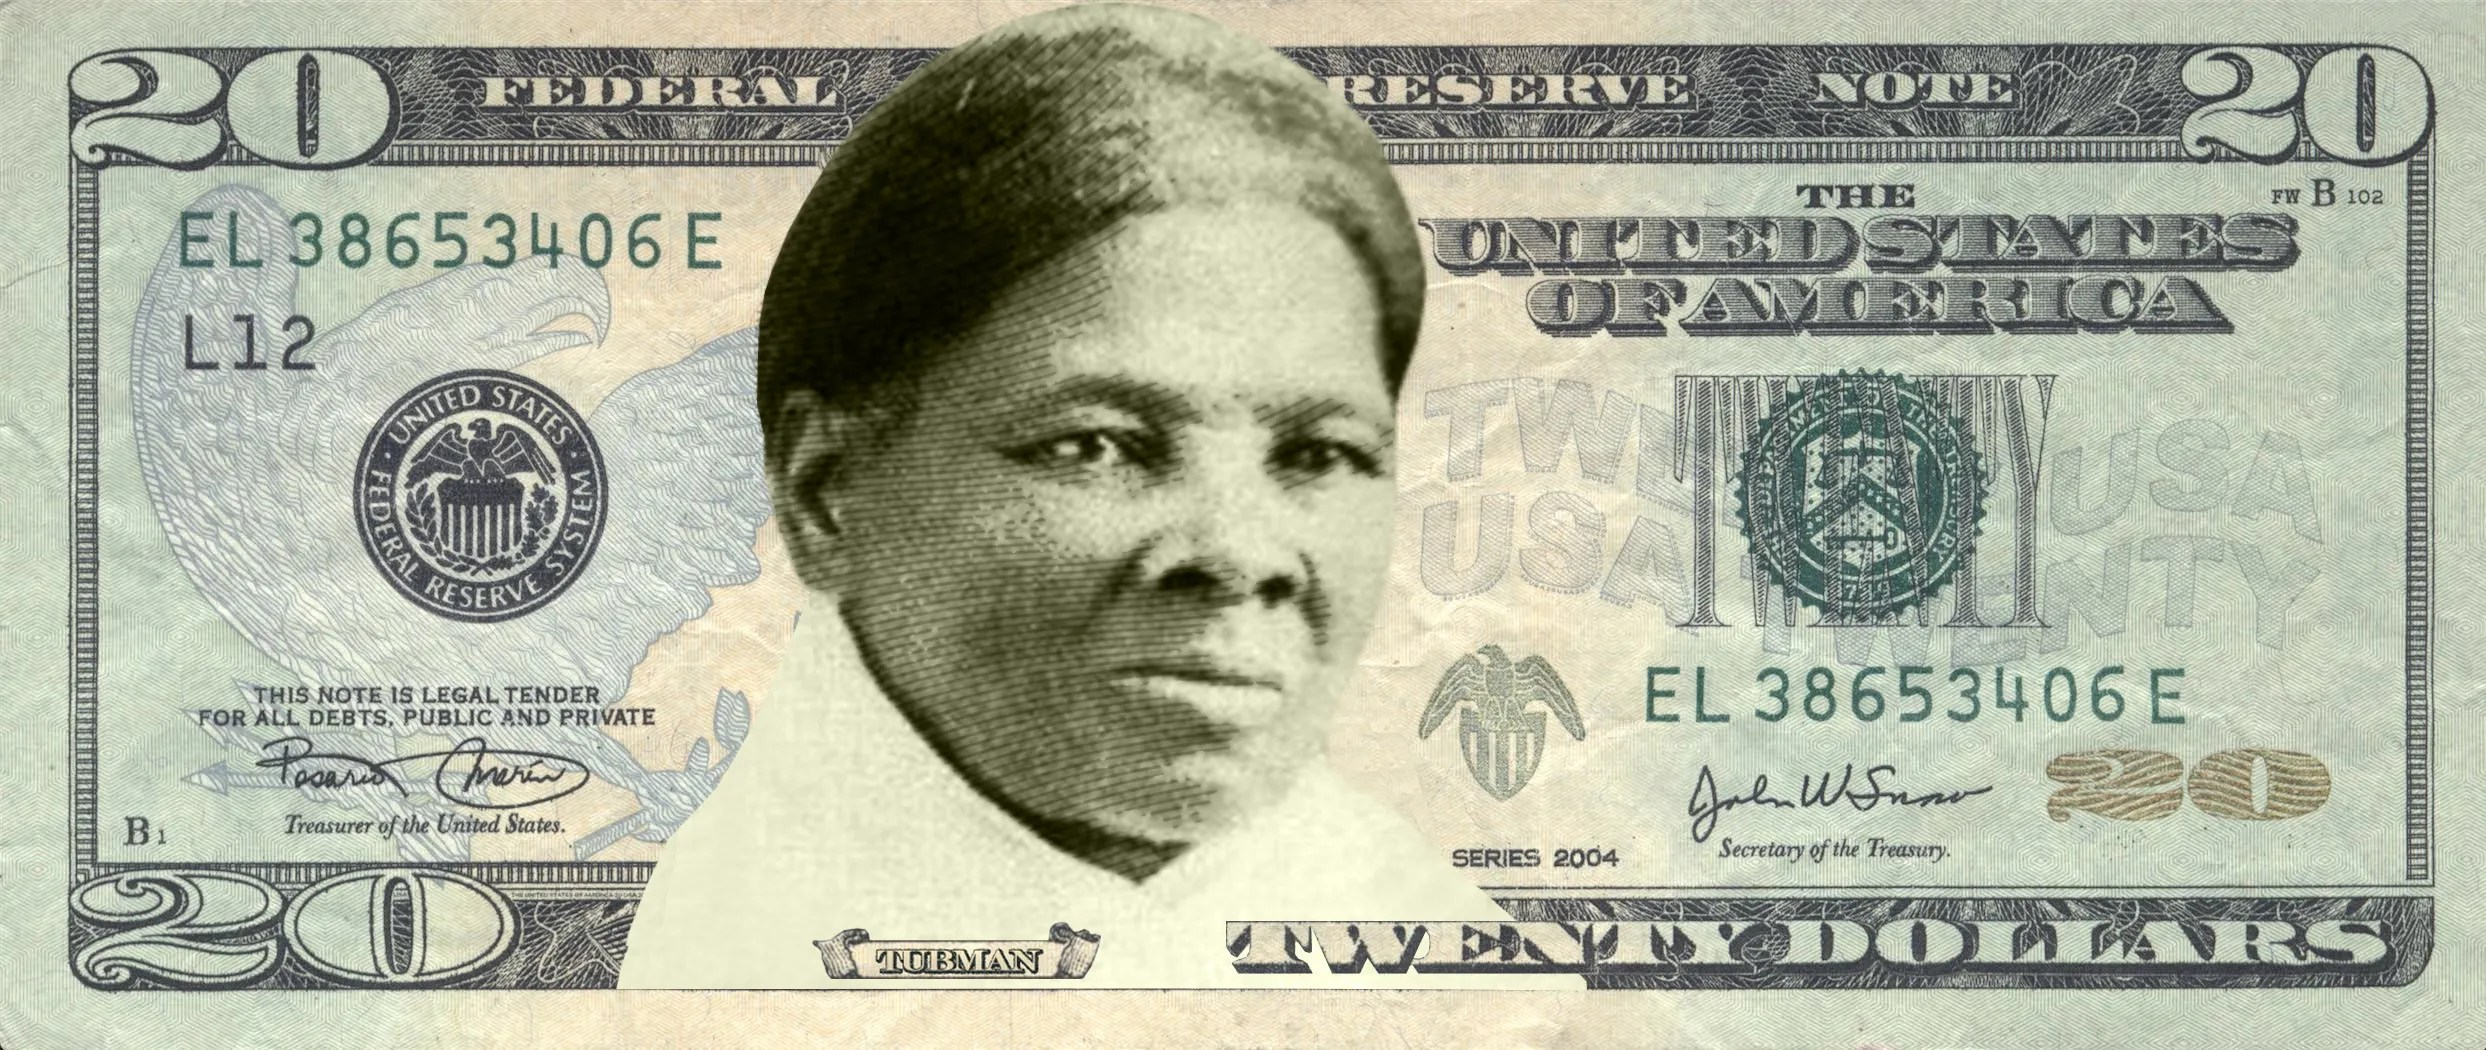 How To Spot A Fake 20 Dollar Bill